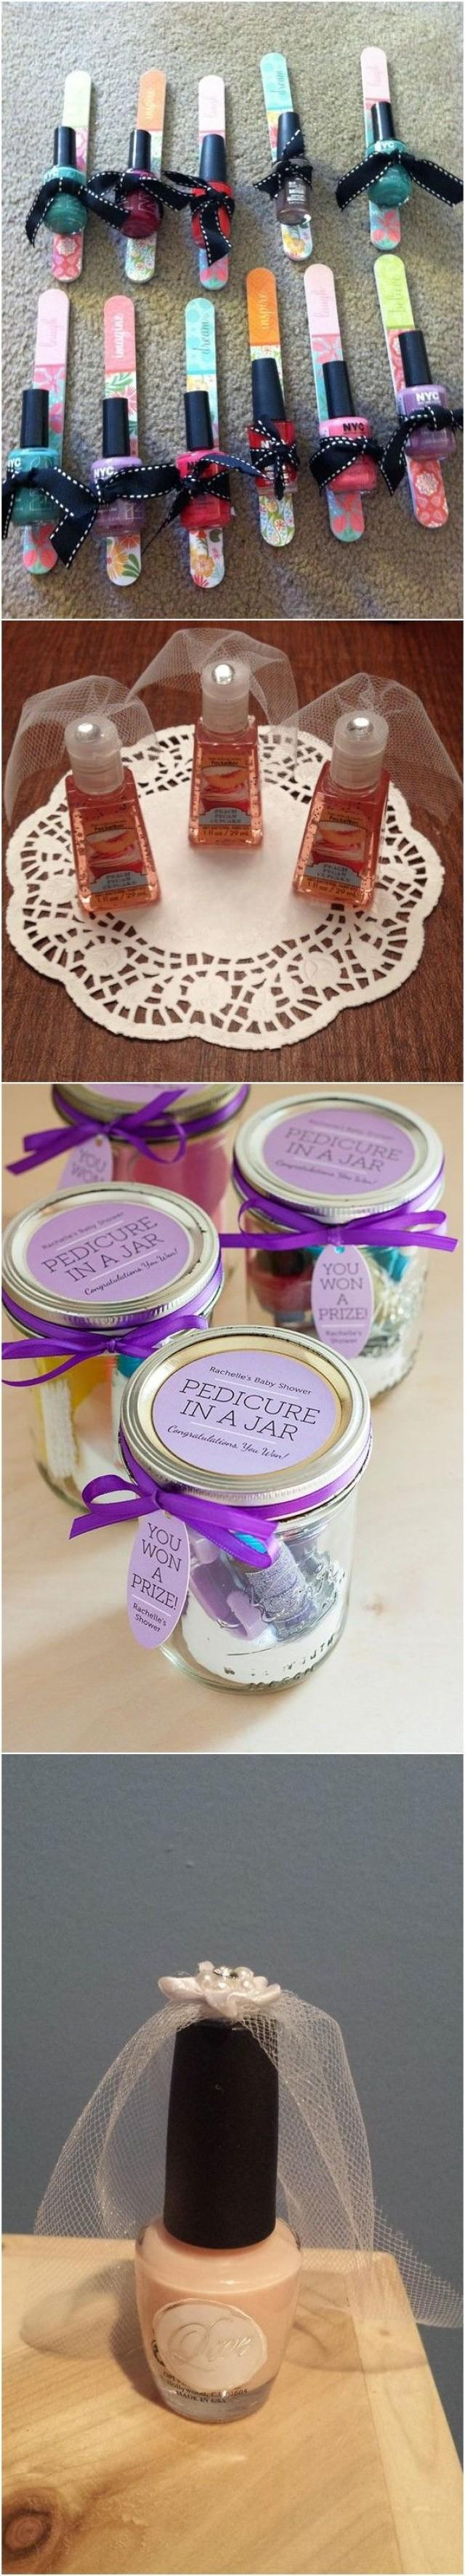 20 Bridal Shower Favor Gifts Your Guests Will Like 2692065